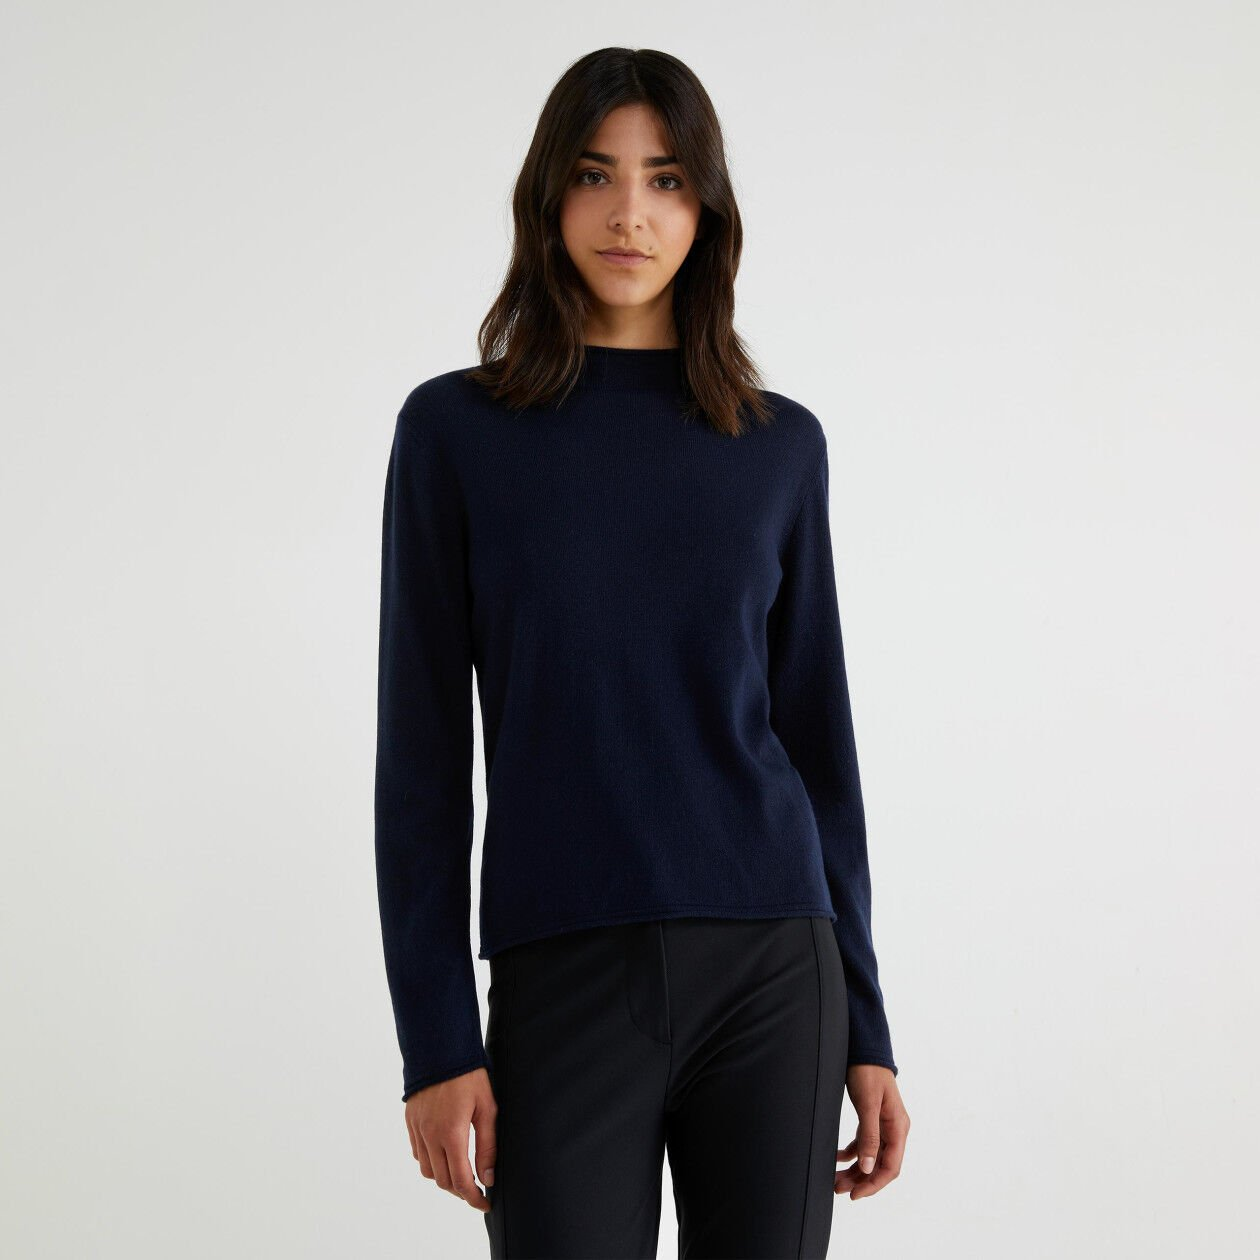 Cashmere blend turtleneck sweater